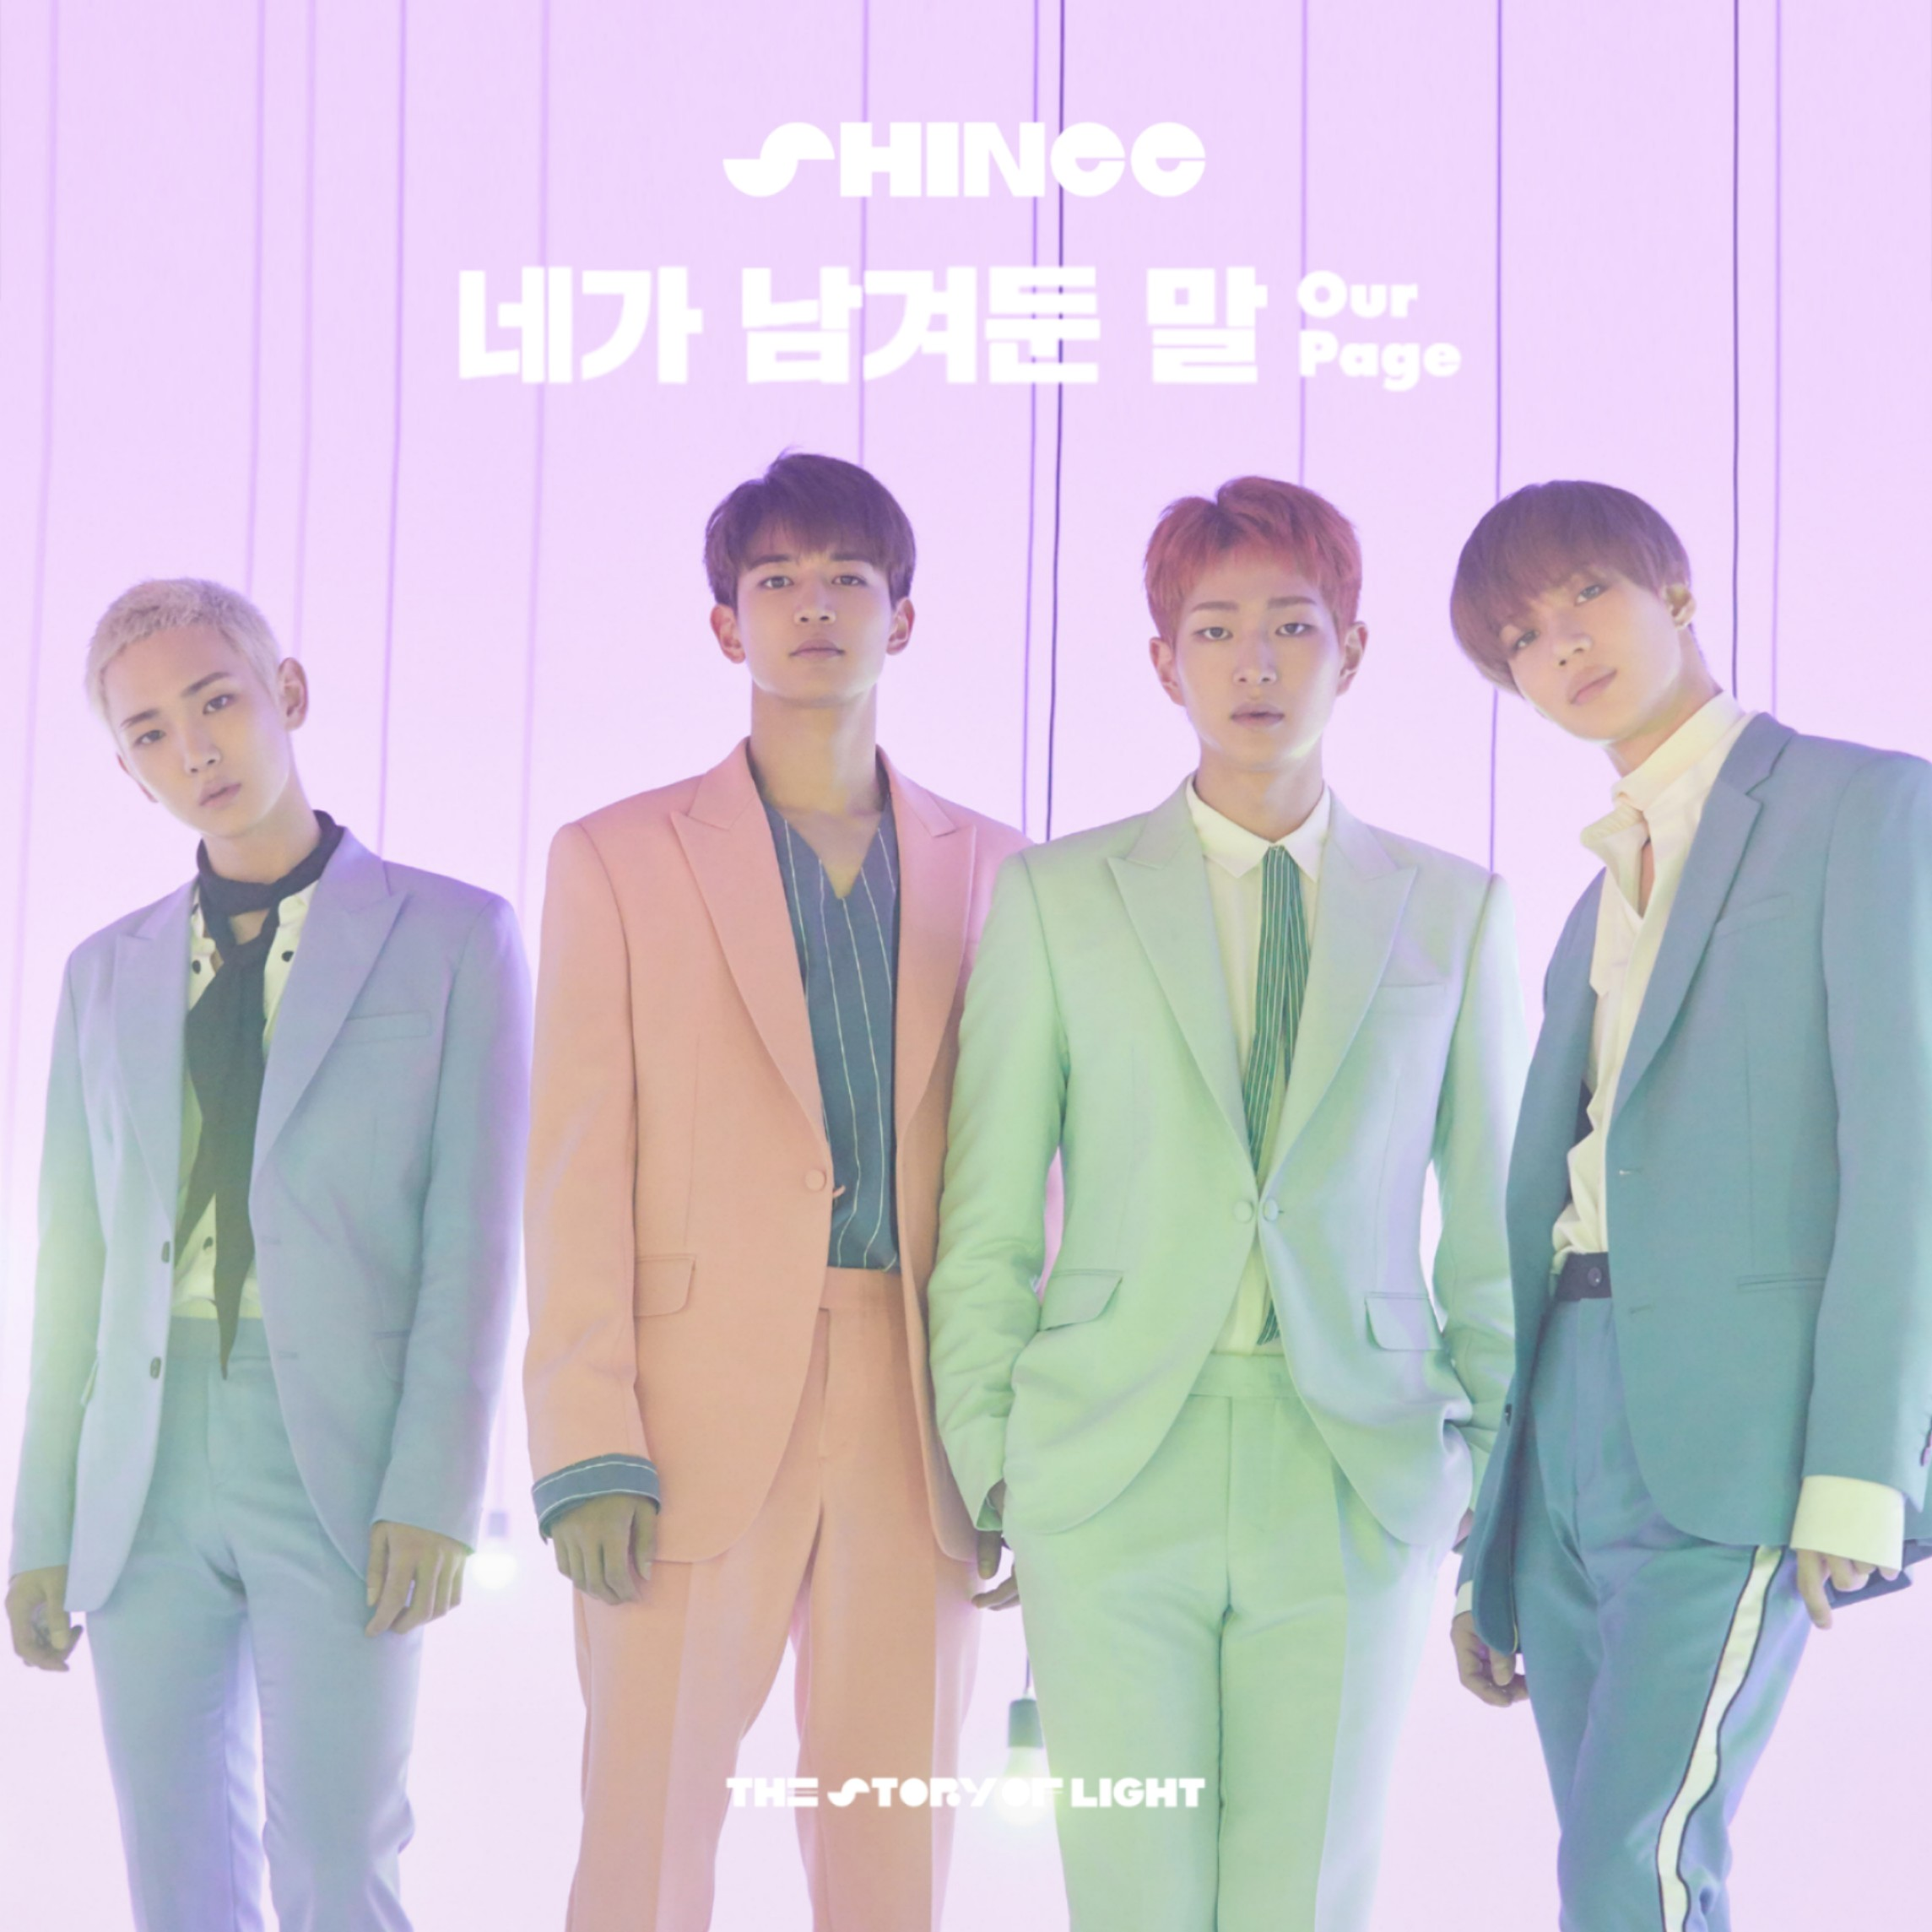 SHINEE OUR PAGE / THE STORY OF LIGHT album cover by LEAlbum